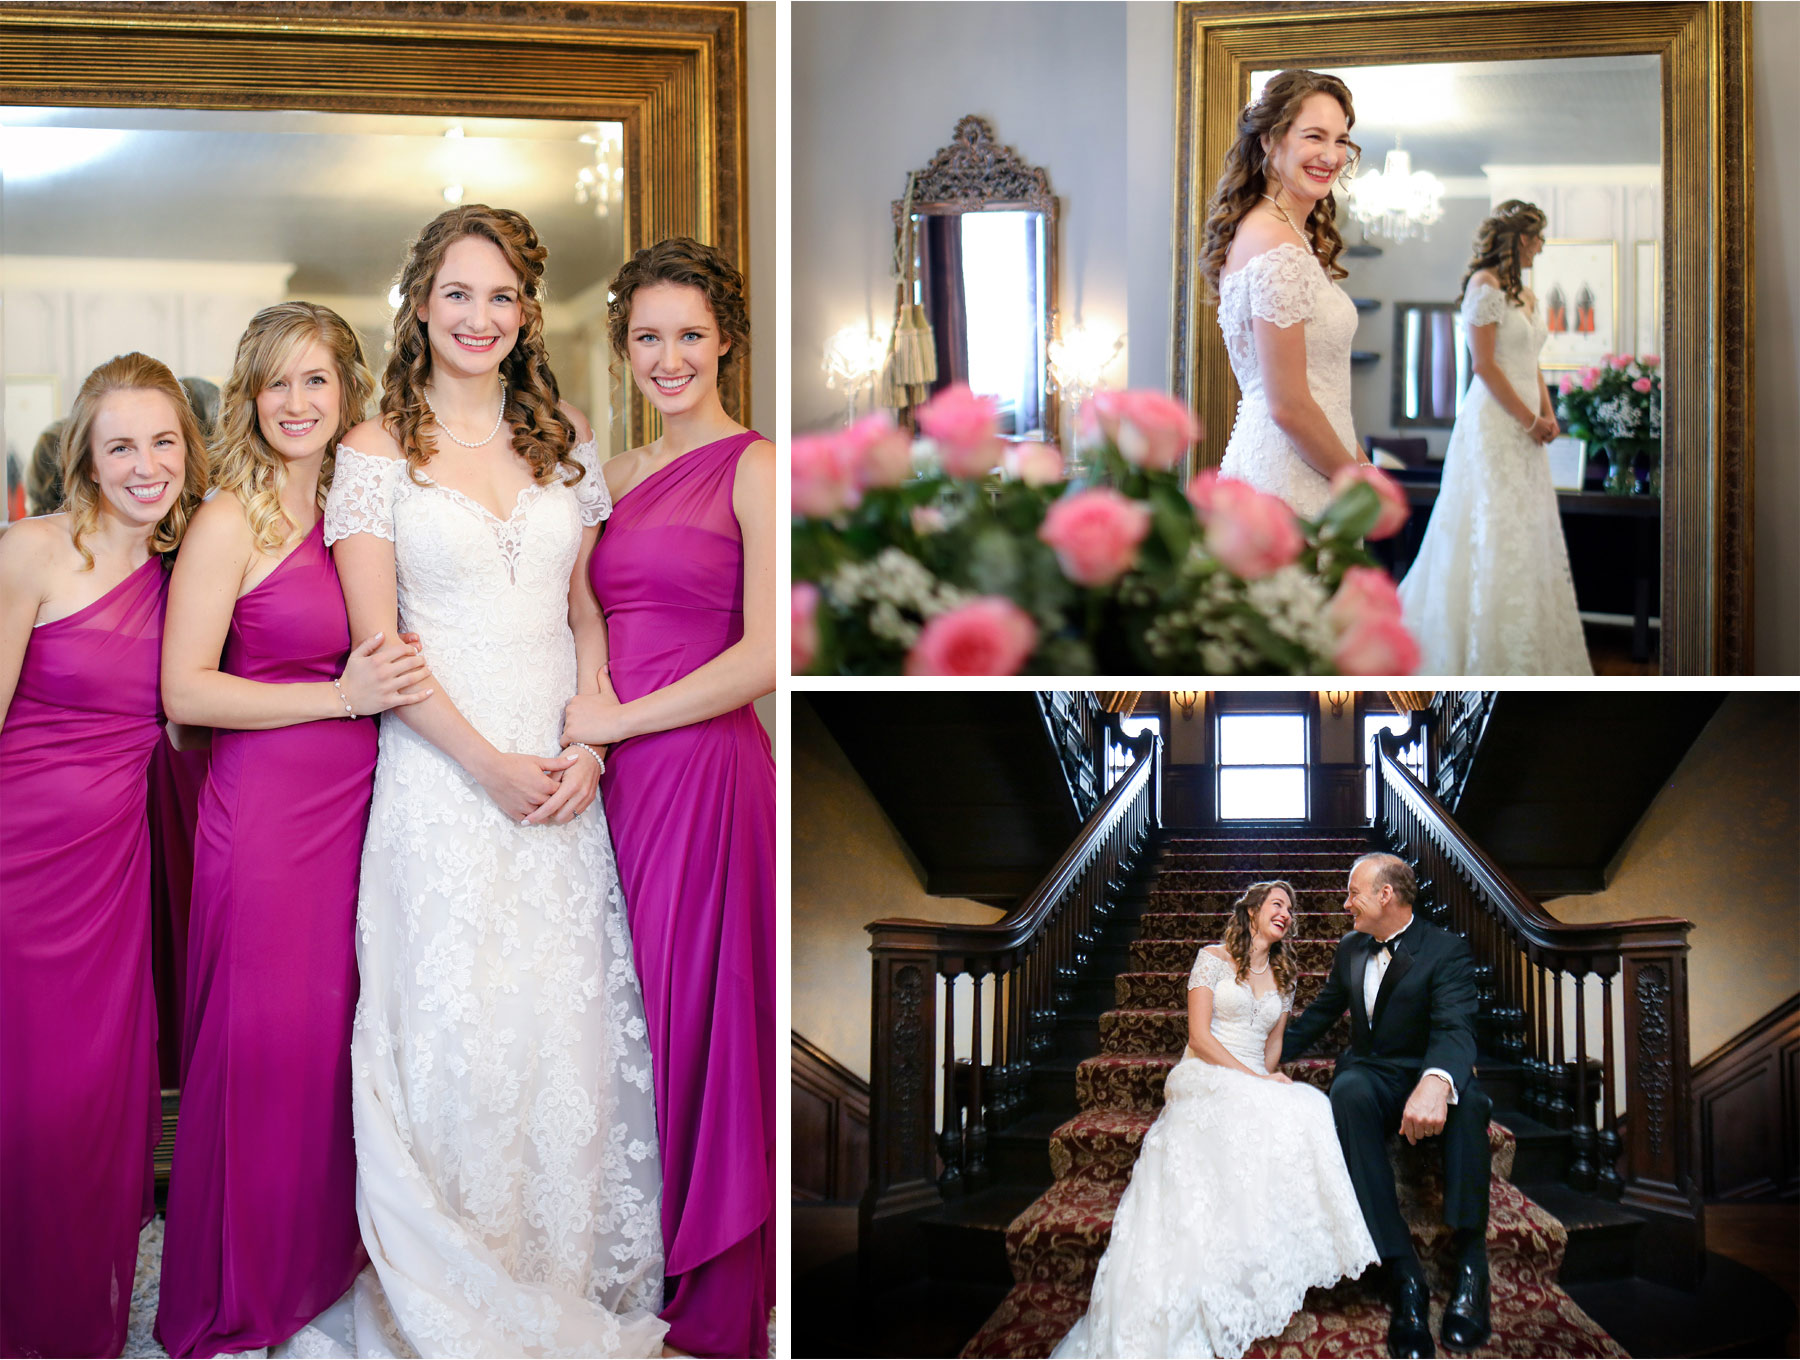 02-Minneapolis-Minnesota-Wedding-Photography-by-Vick-Photography-Semple-Mansion-Wedding-Dress-Mother-of-the-Bride-Father-Bridesmaids-Danielle-and-Chance.jpg